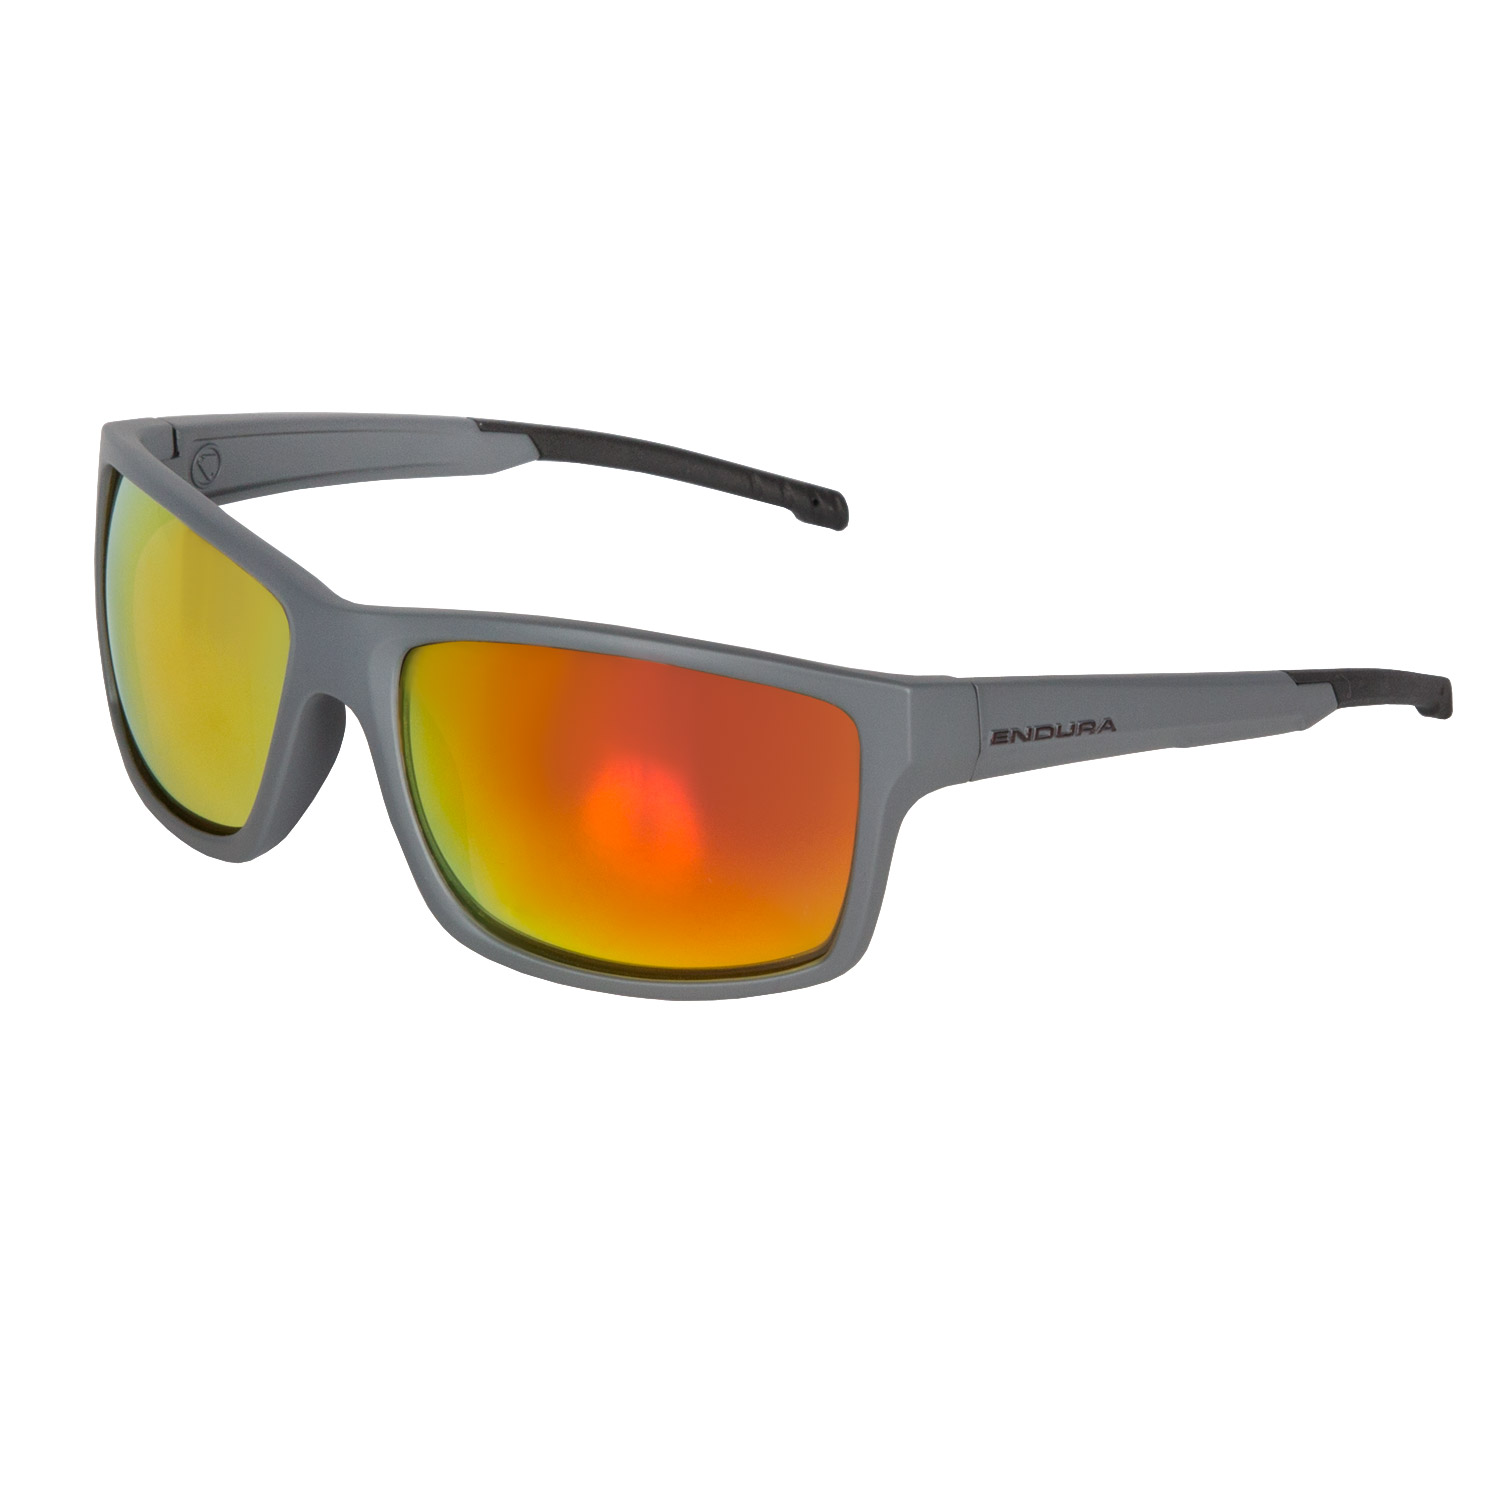 Hummvee Glasses Grey